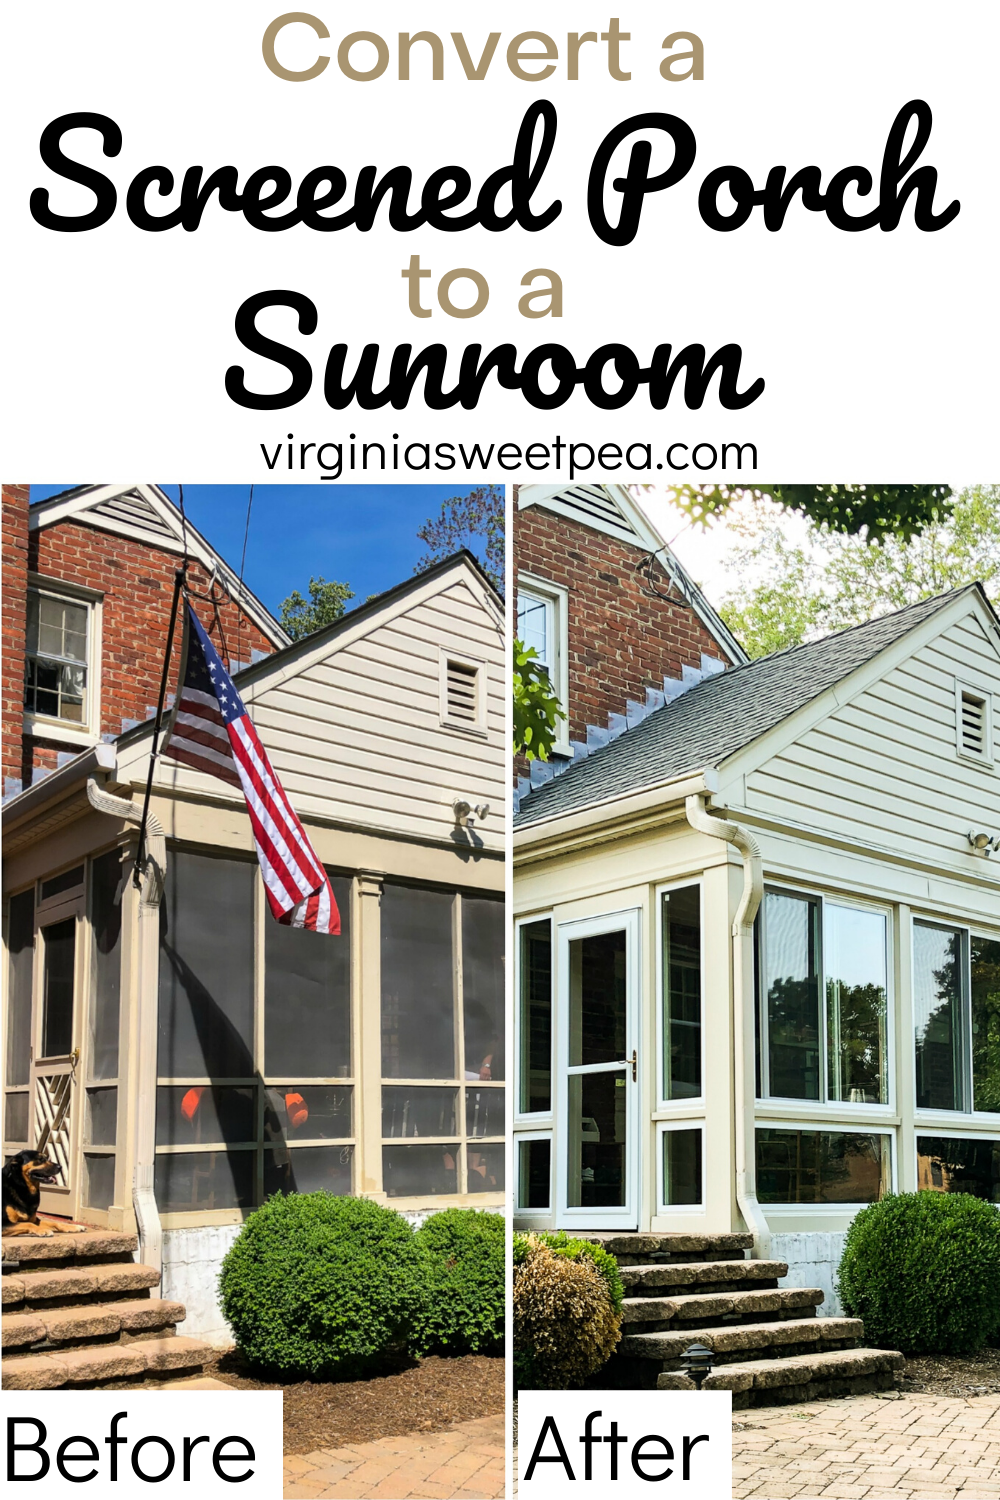 Convert a Screened Porch to a Sunroom - A screened porch is great but a sunroom with windows that open and close turns the space into one that can be enjoyed year round. See before and after + progress pictures as a 1950's screened porch is converted into a sunroom. #sunroom #screenedporch #screenedporchtosunroom via @spaula